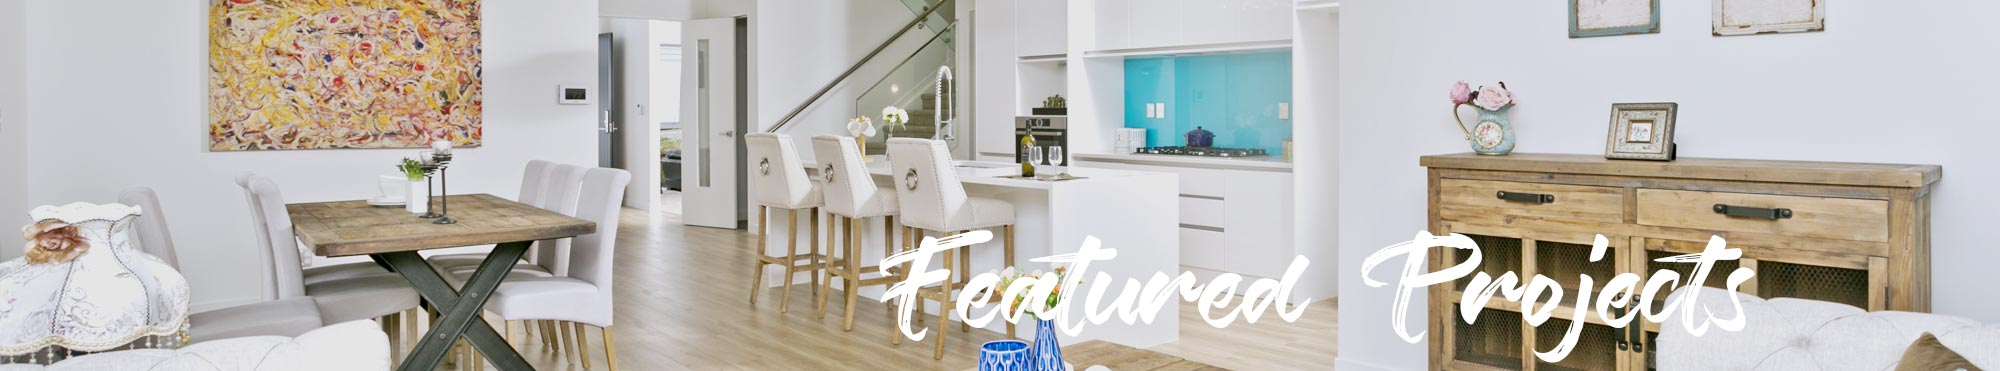 featuredprojects-banner, Kitchen Renovation, Bathroom Renovation, House Renovation Auckland